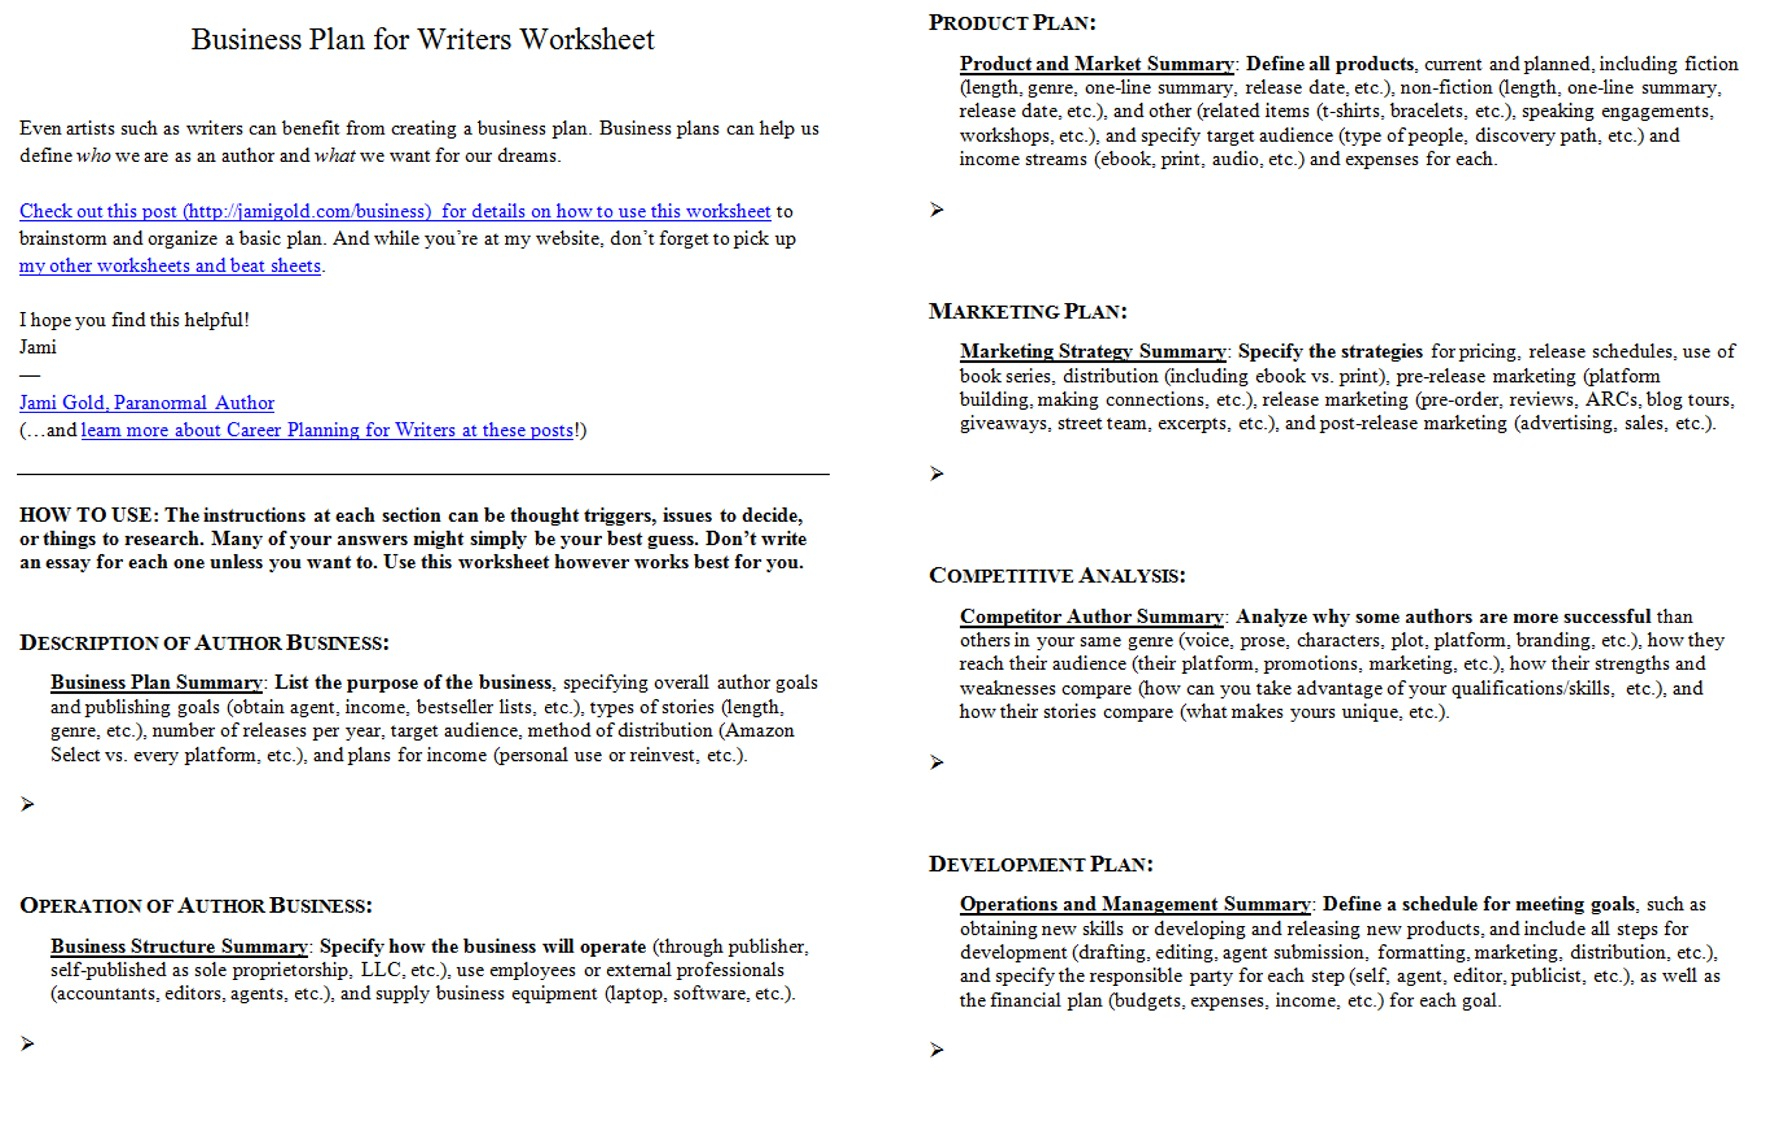 Weirdmailus  Scenic Worksheets For Writers  Jami Gold Paranormal Author With Hot Screen Shot Of Both Pages Of The Business Plan For Writers Worksheet With Amazing Coin Worksheets Nd Grade Also Adverbs Worksheet Rd Grade In Addition Printable Fractions Worksheets And Valentine Day Worksheets As Well As Middle Ages Worksheet Additionally Theoretical Yield Worksheet From Jamigoldcom With Weirdmailus  Hot Worksheets For Writers  Jami Gold Paranormal Author With Amazing Screen Shot Of Both Pages Of The Business Plan For Writers Worksheet And Scenic Coin Worksheets Nd Grade Also Adverbs Worksheet Rd Grade In Addition Printable Fractions Worksheets From Jamigoldcom